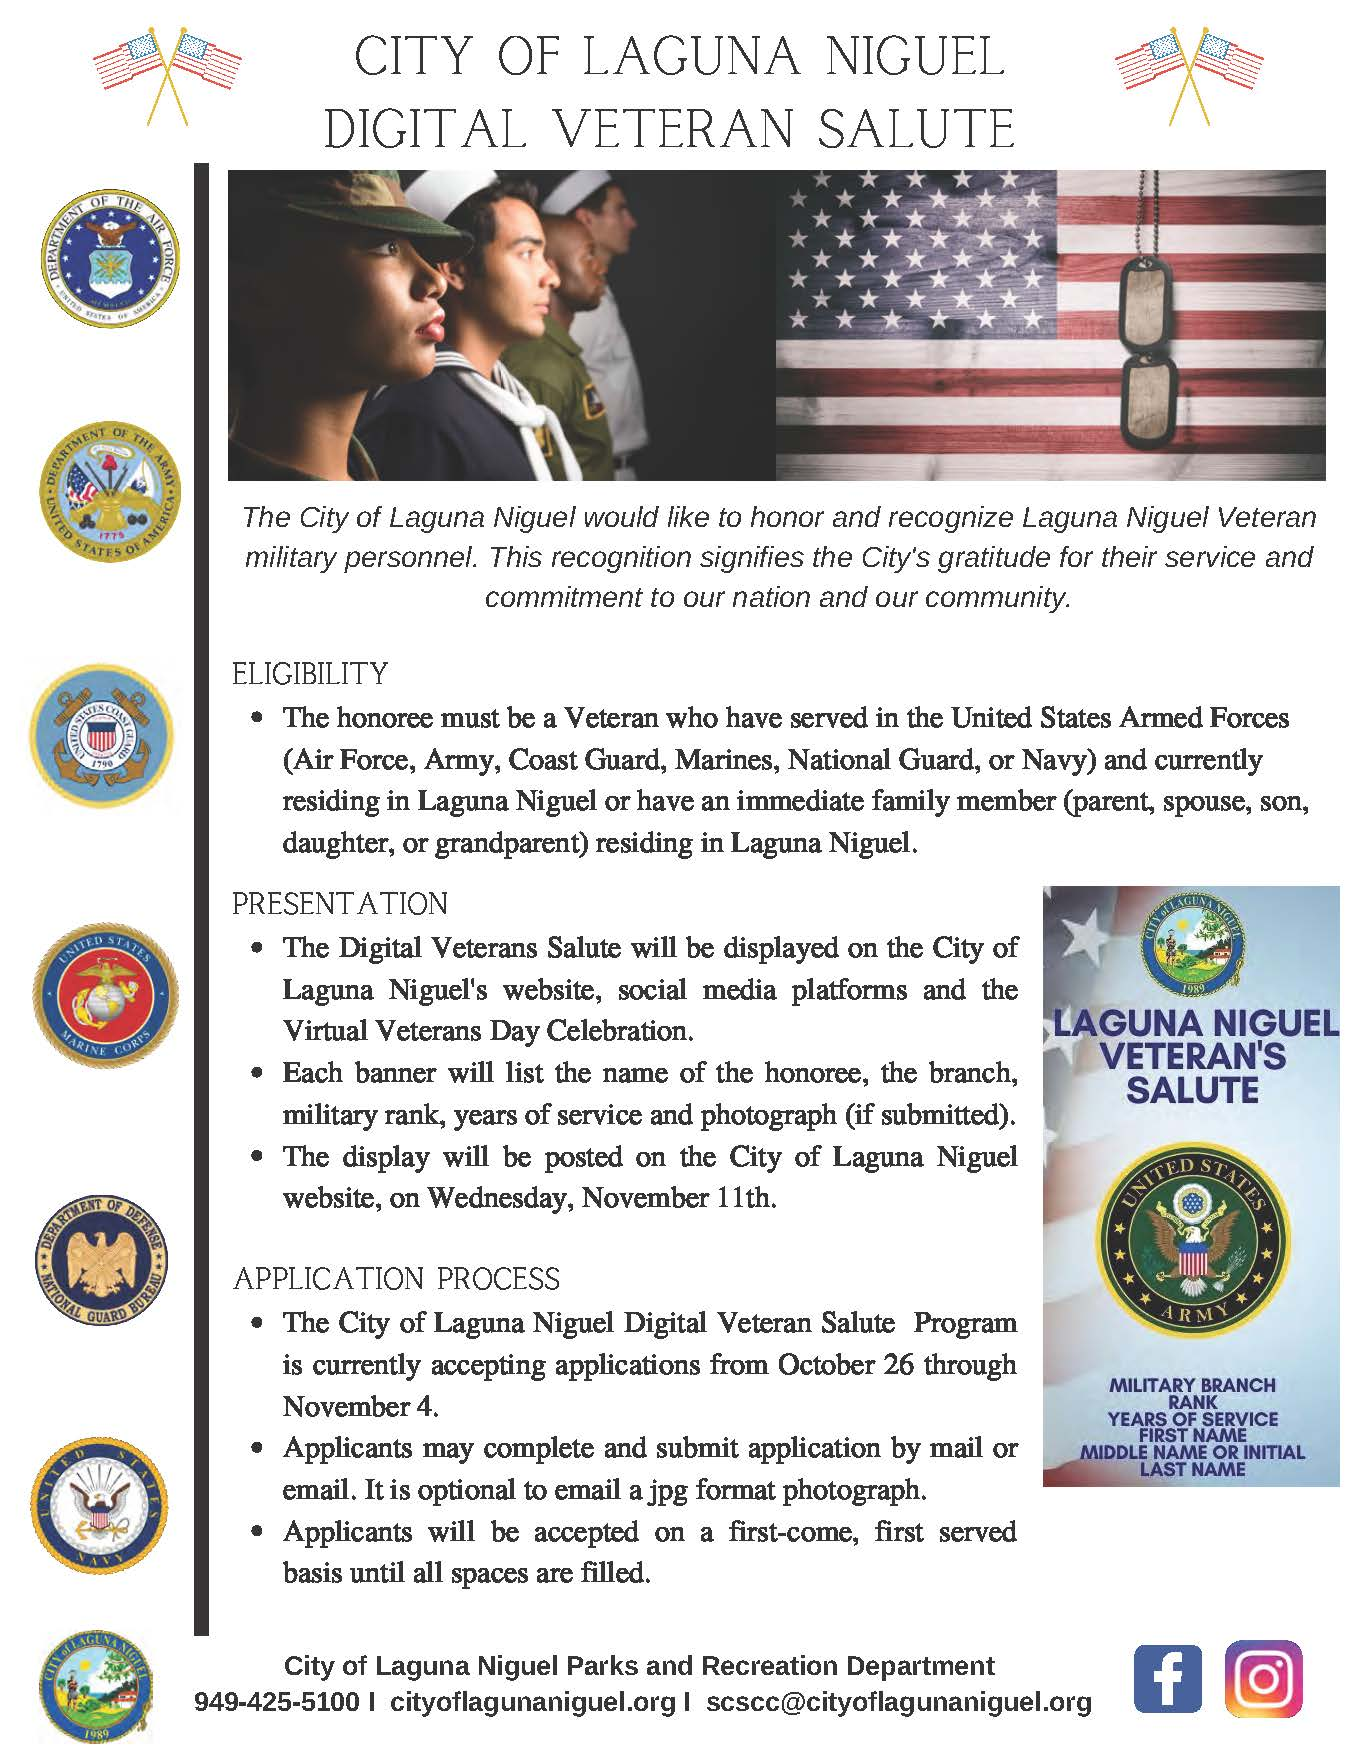 Veterans Day - Digital Veteran Salute Flyer